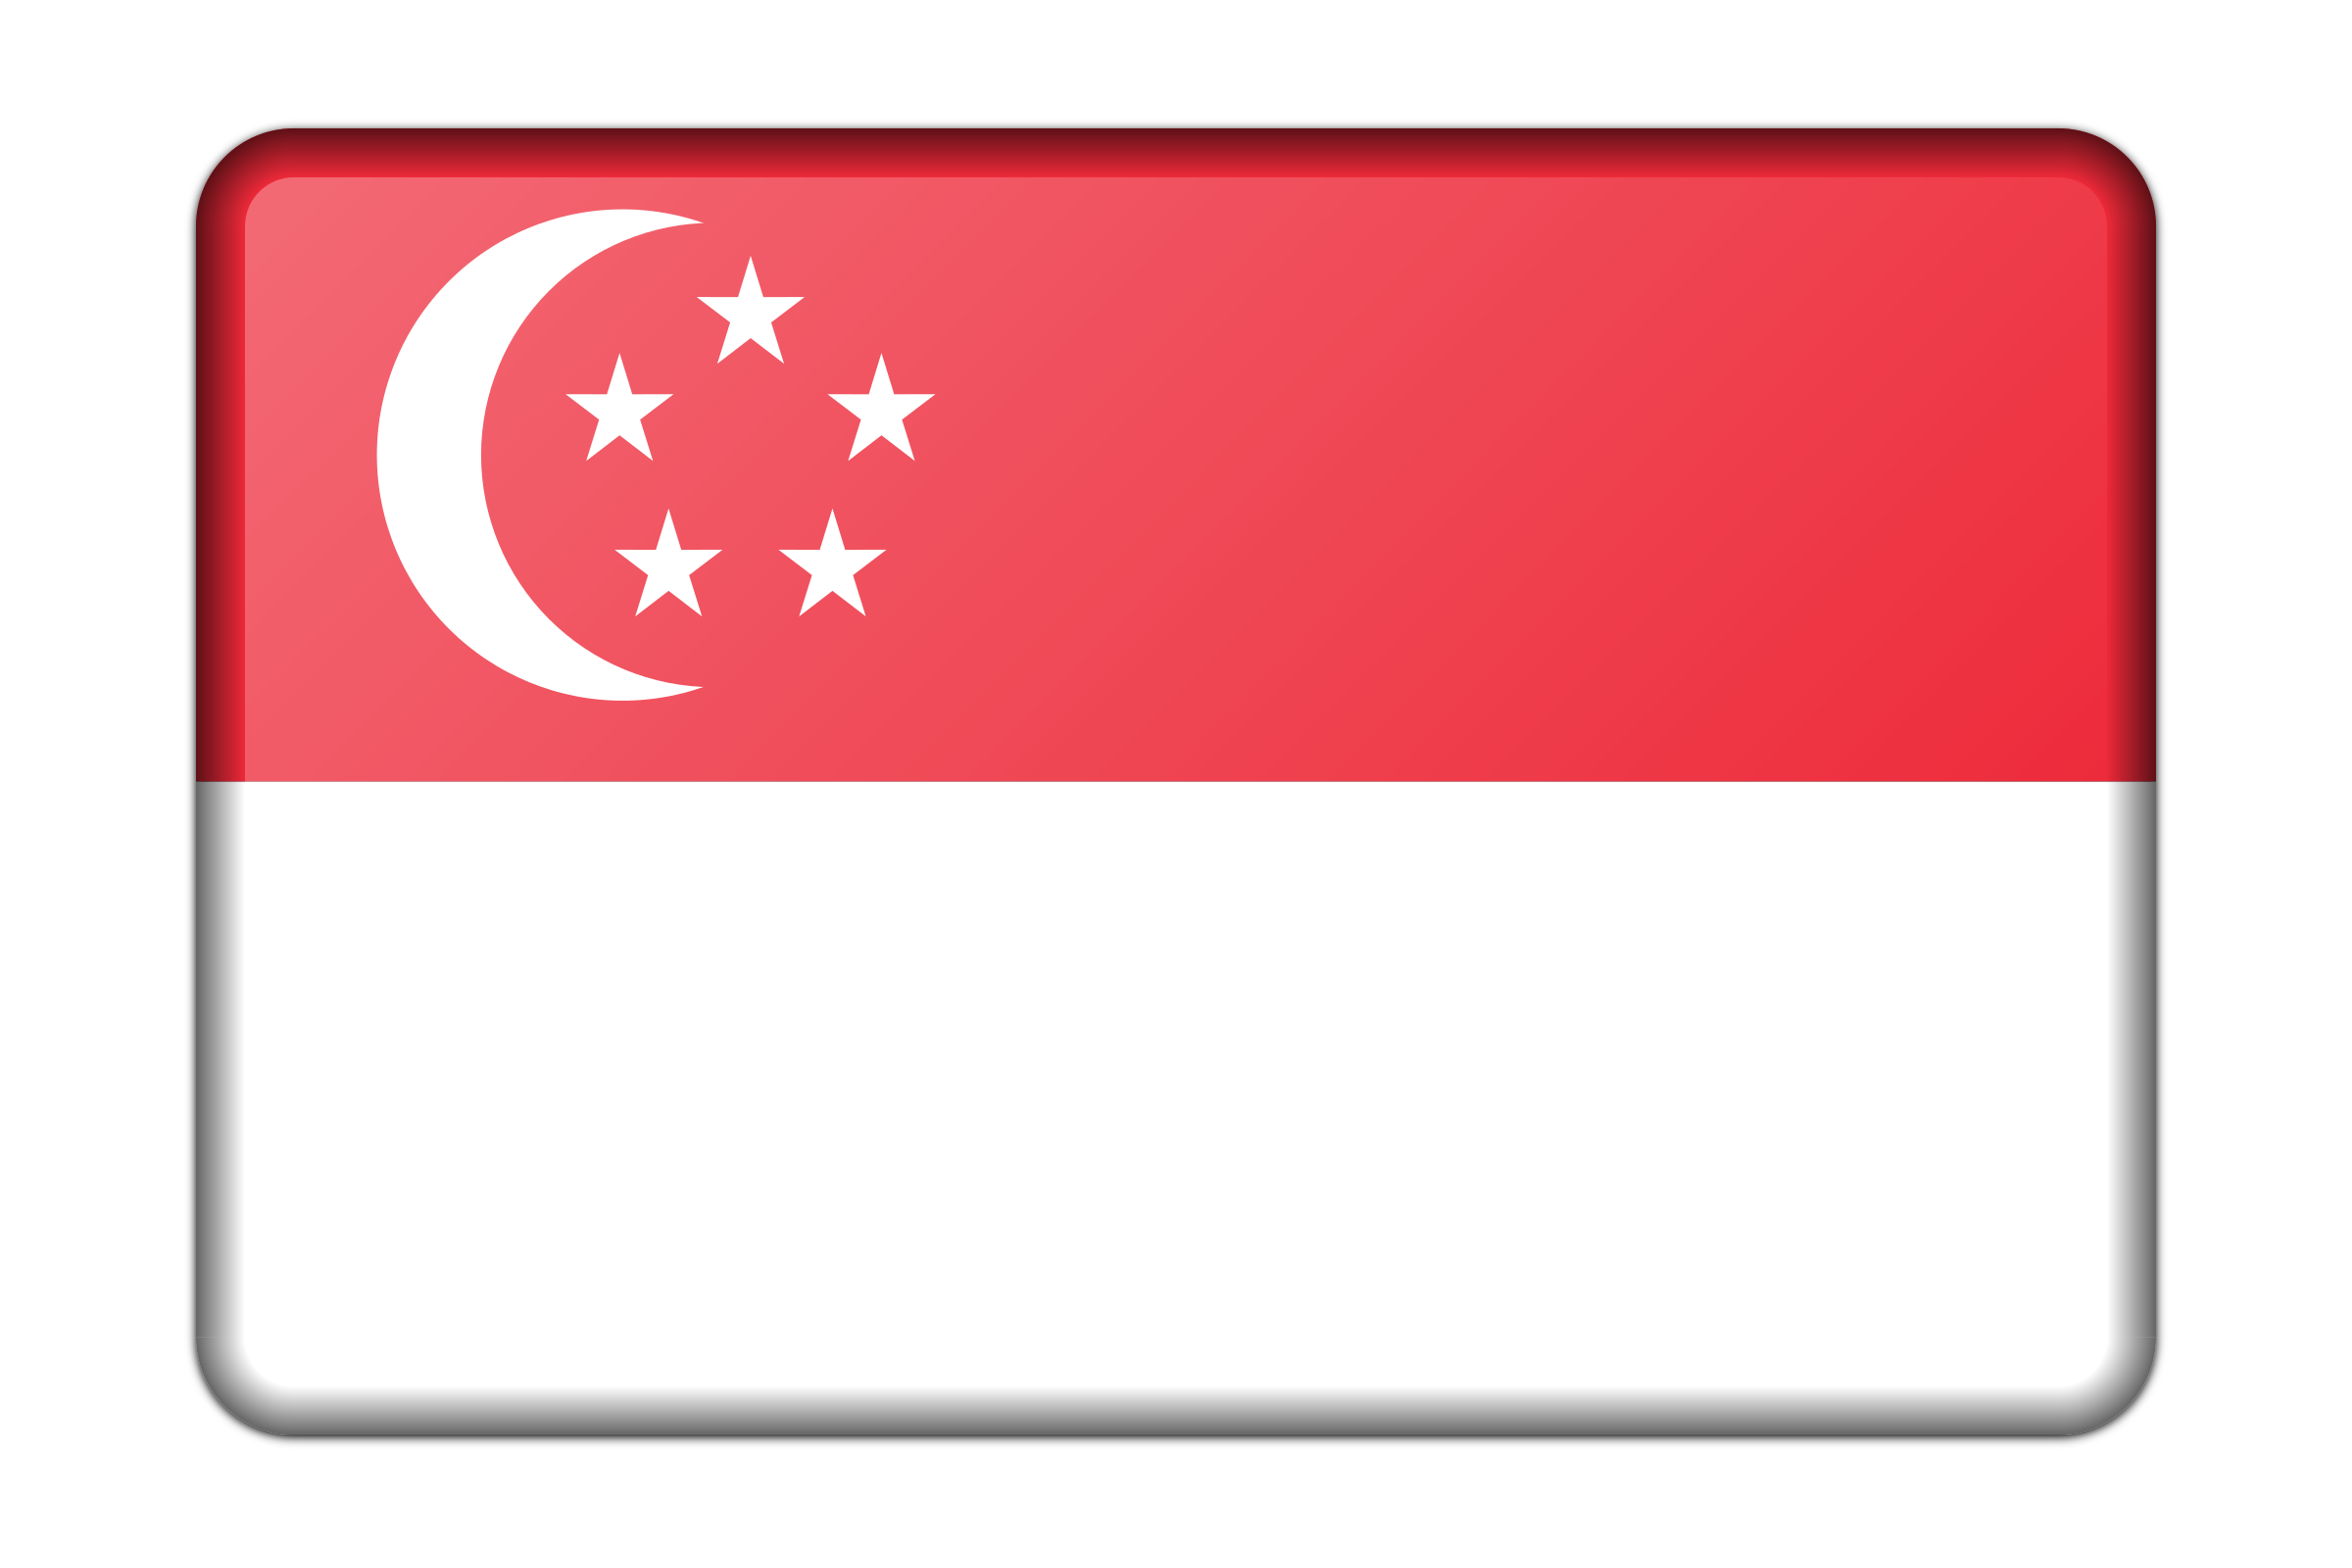 Singapore flag (bevelled) by Firkin